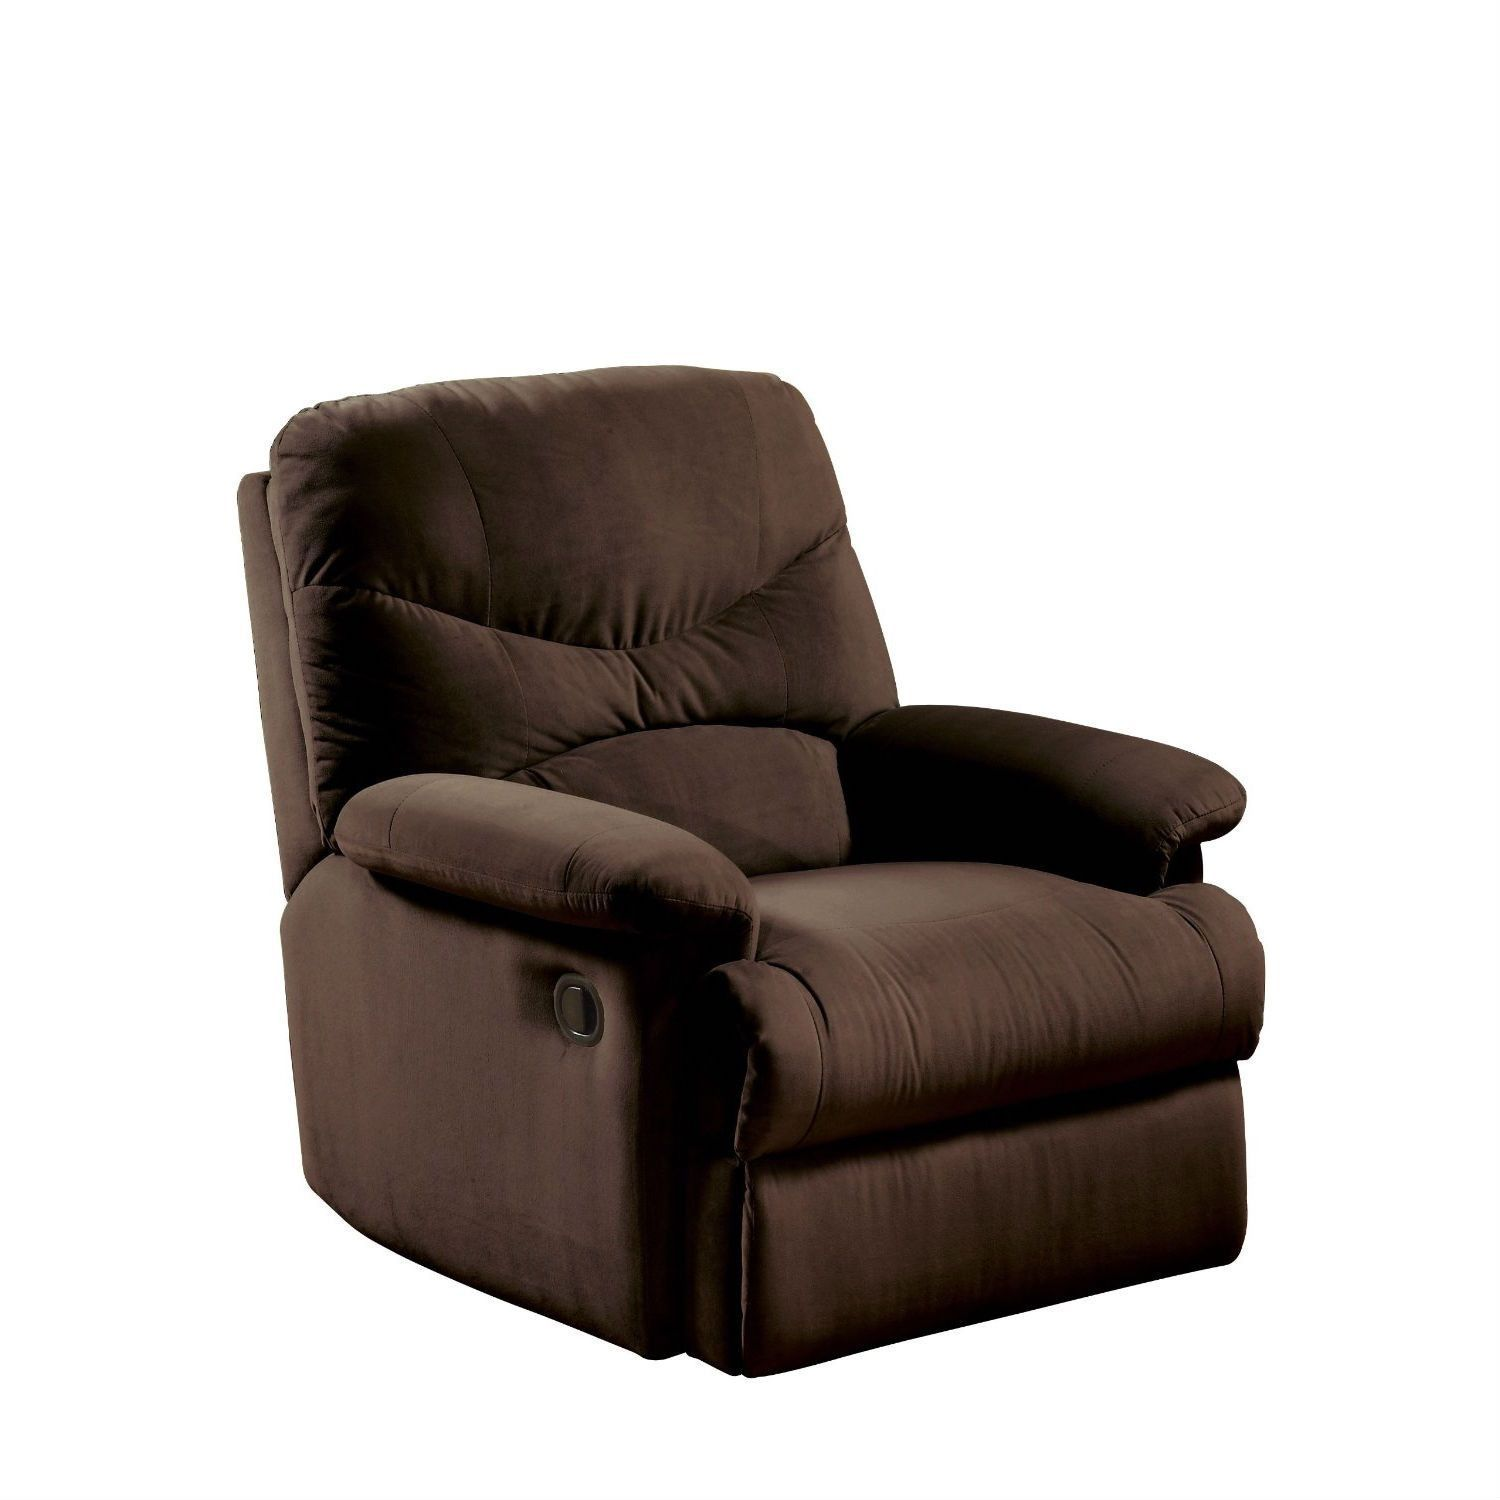 Comfortable Recliner Chair In Chocolate Brown Microfiber